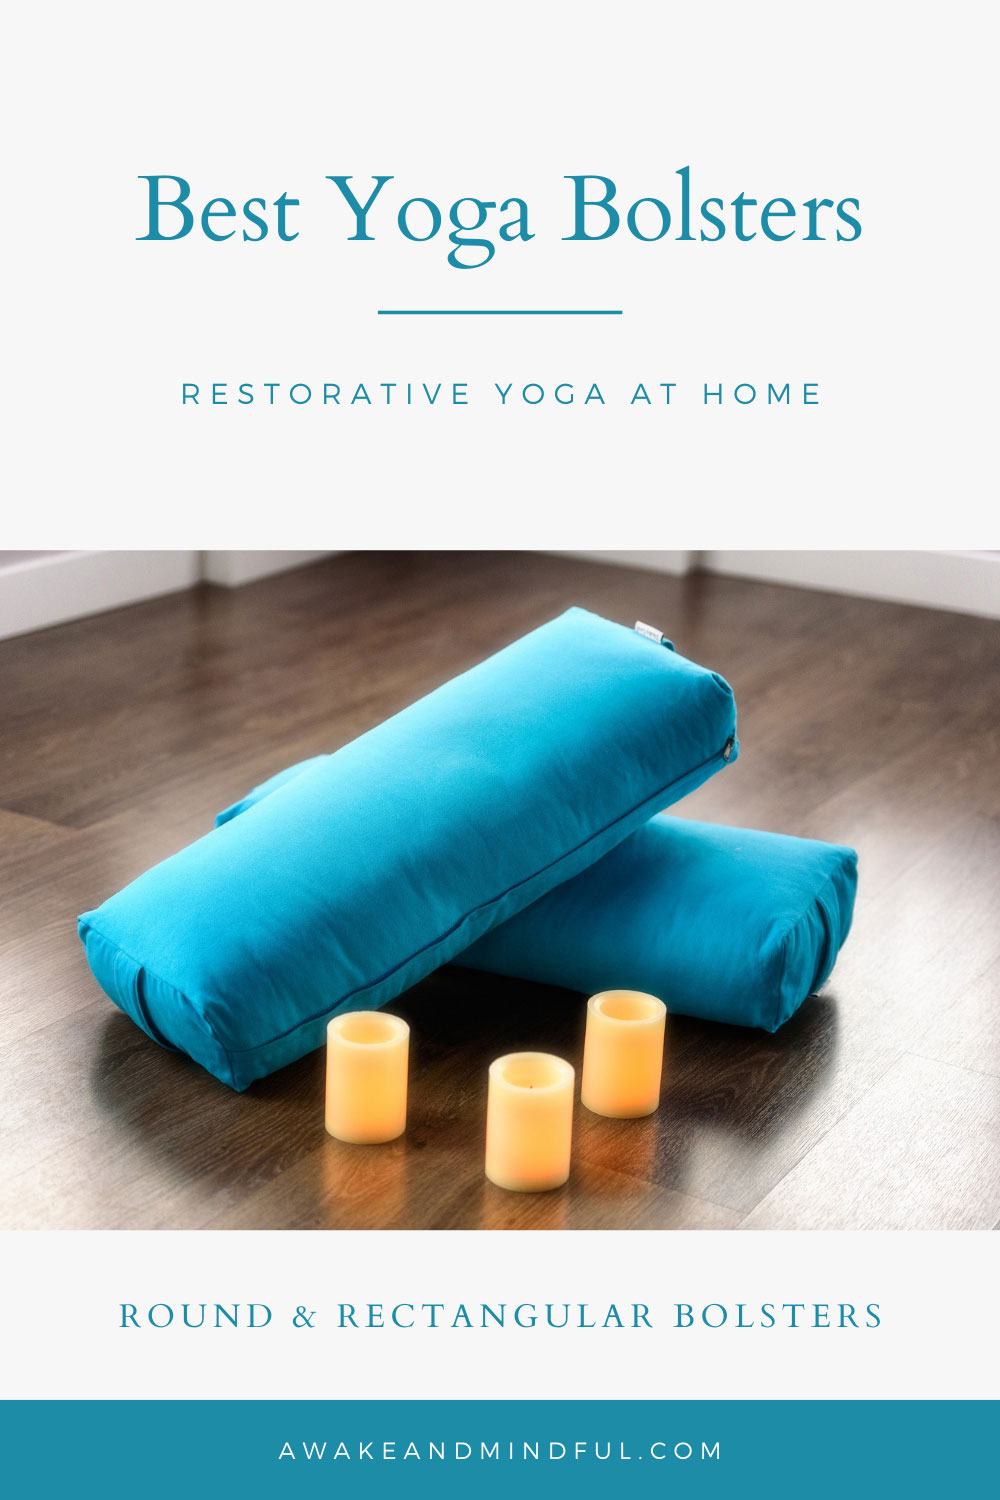 10 Best Yoga Bolsters for Restorative Yoga at Home